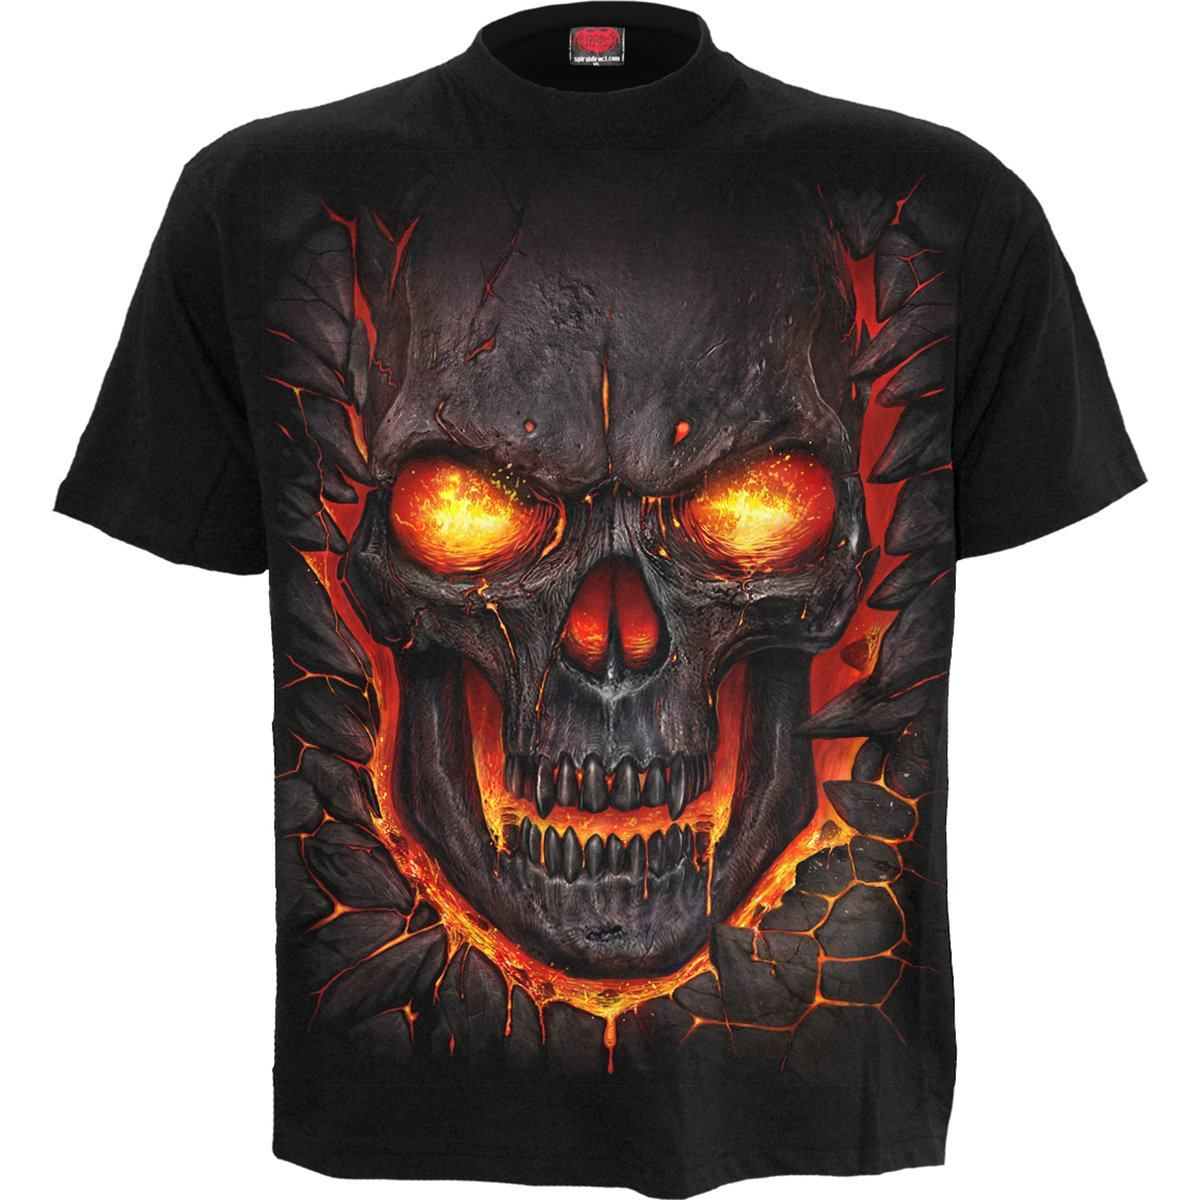 Lava Skulls Kid's Black T-Shirt